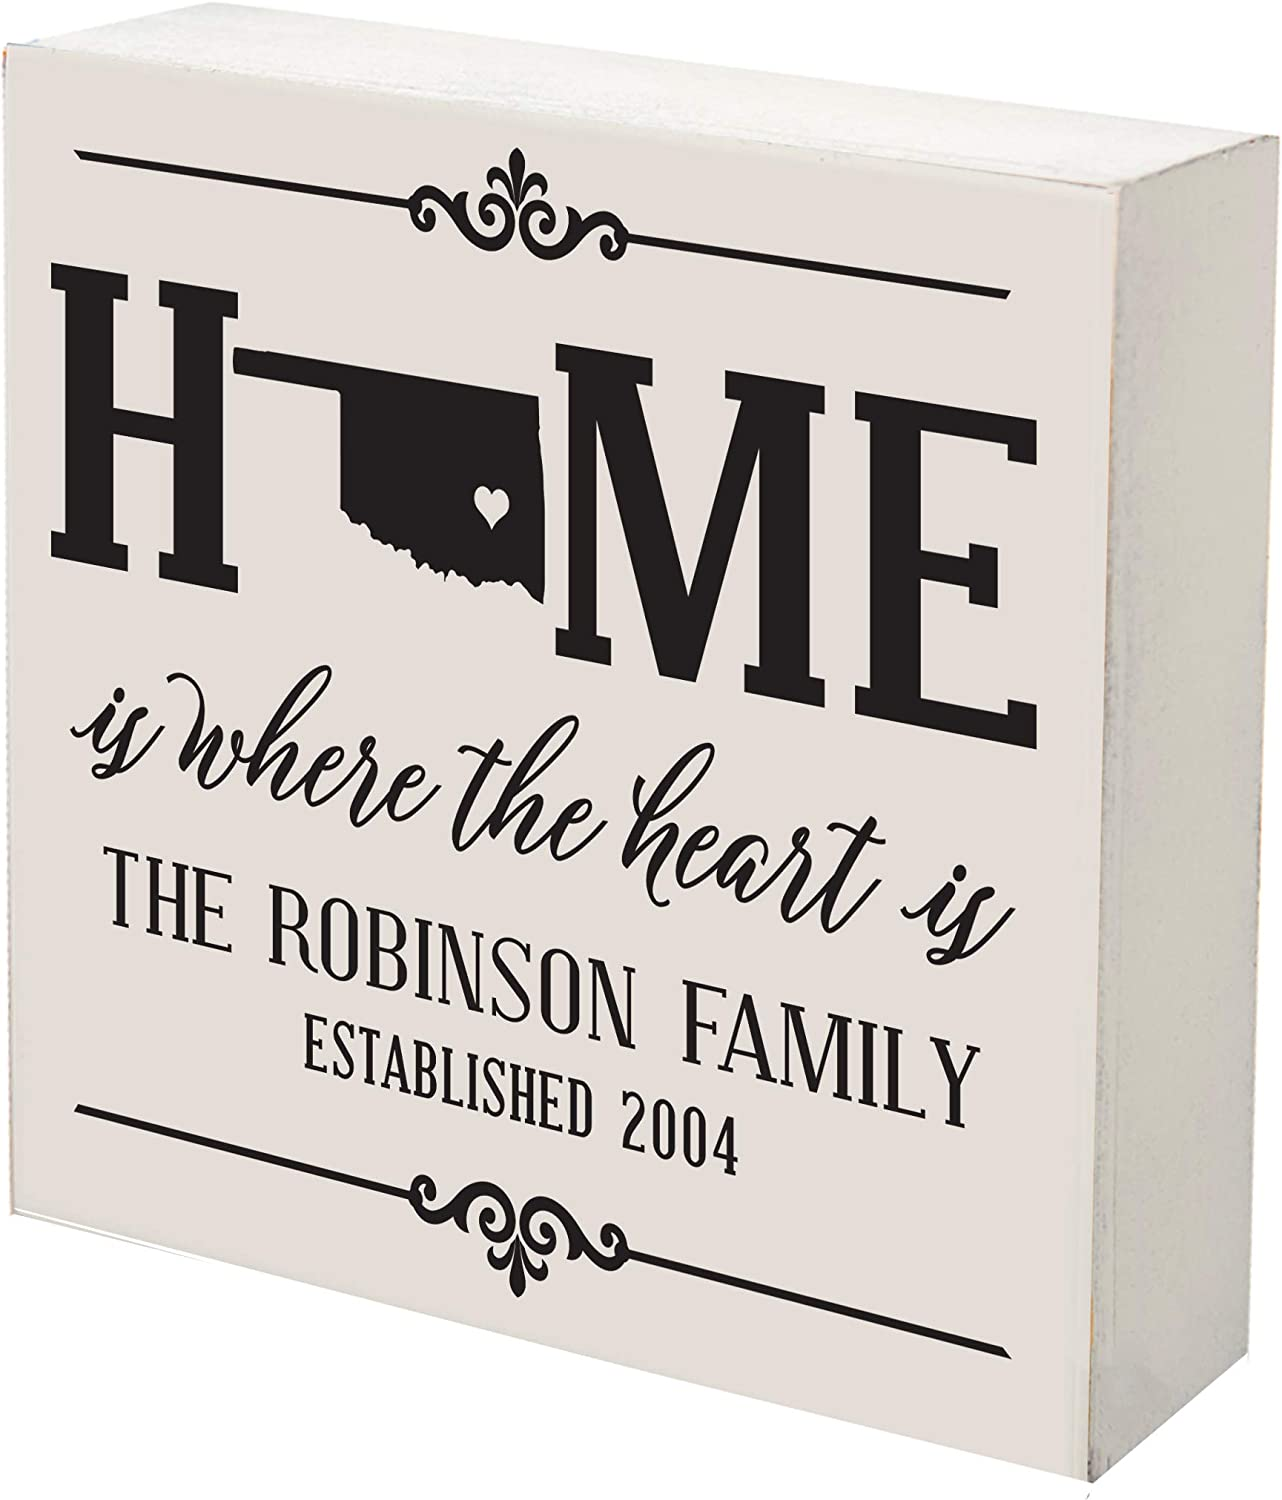 LifeSong Fixed price for sale Milestones Personalized Oklahoma Box Home Shadow lowest price State